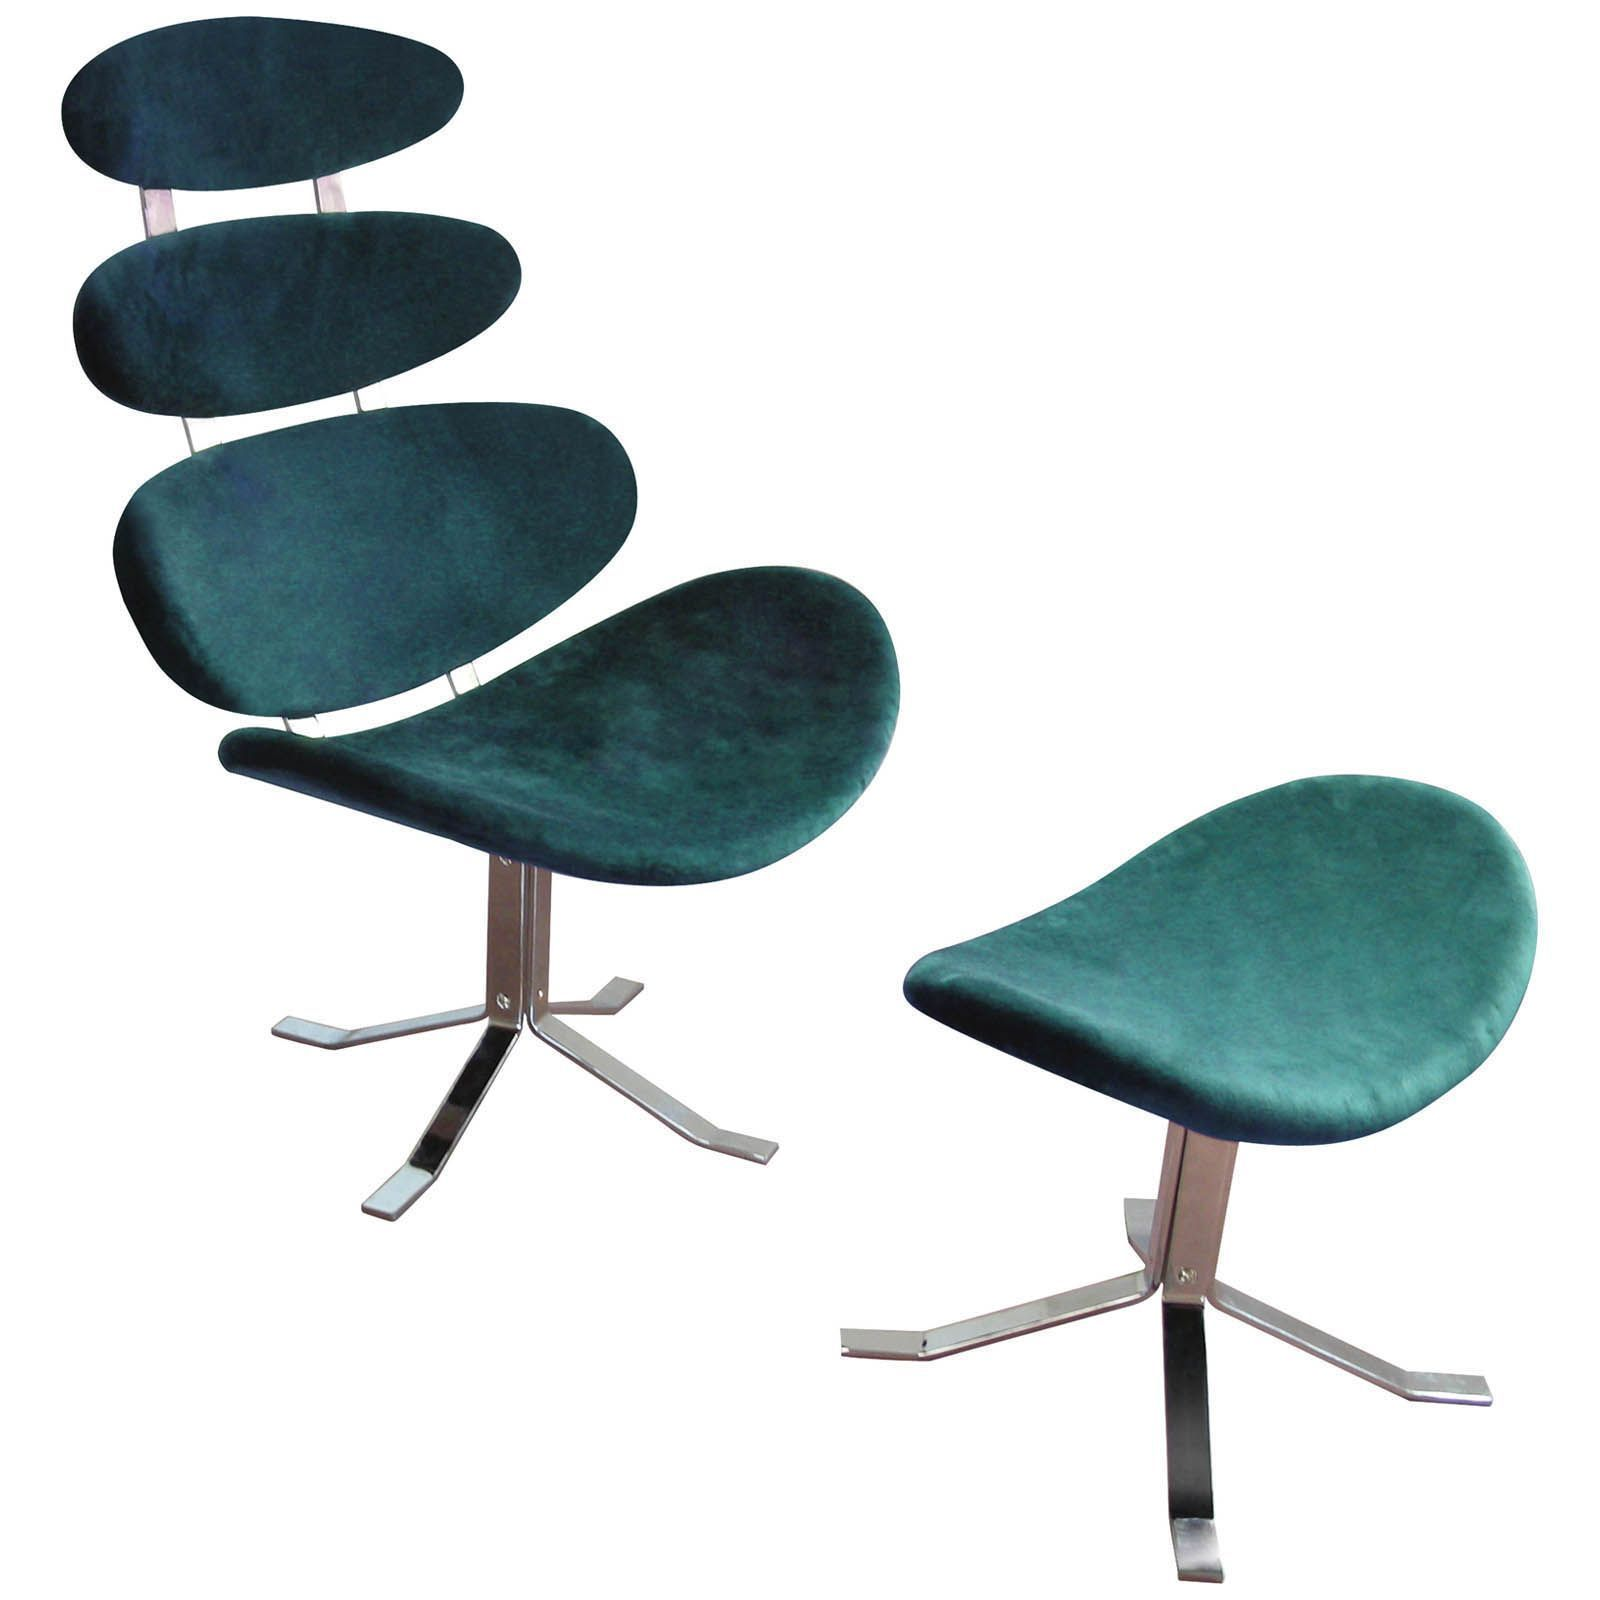 Outstanding Teal Quatro Chair Footstool Things I Want Funky Chairs Creativecarmelina Interior Chair Design Creativecarmelinacom